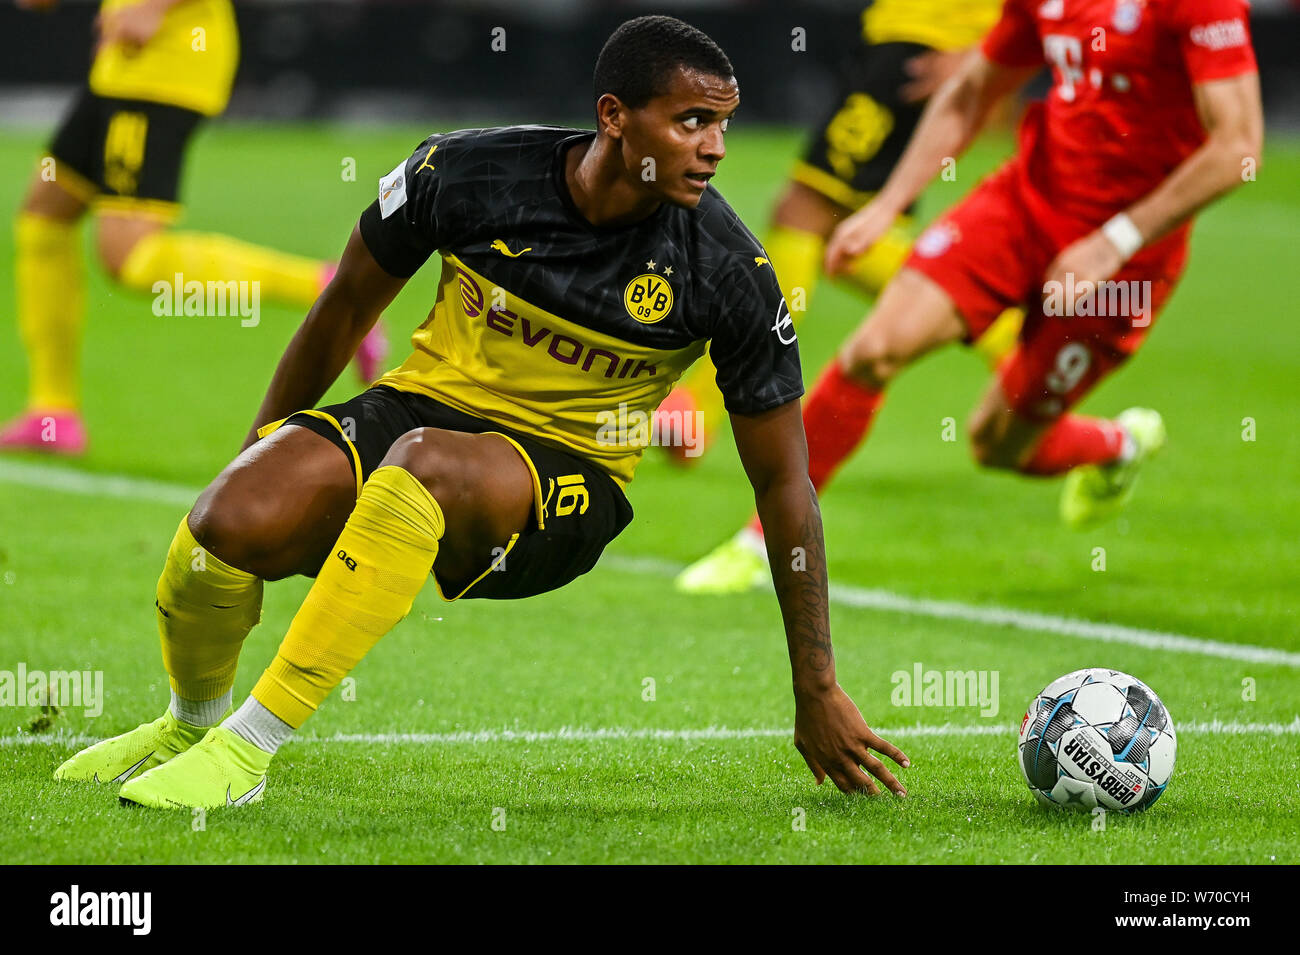 Manuel Akanji From Borussia Dortmund Seen In Action During